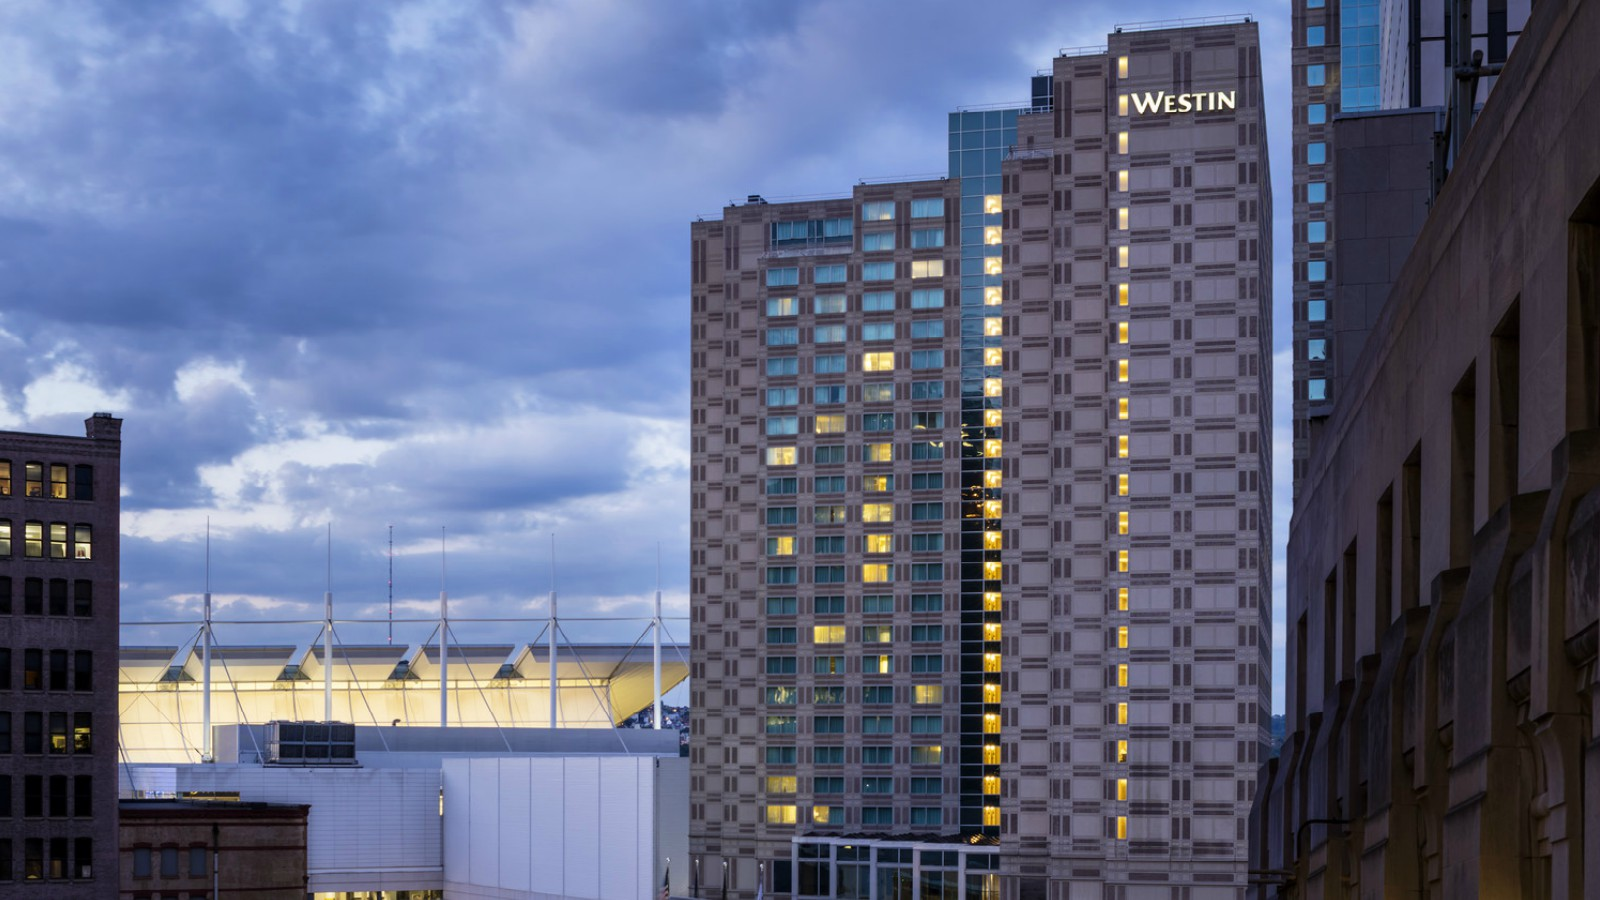 The Westin Convention Center Hotel